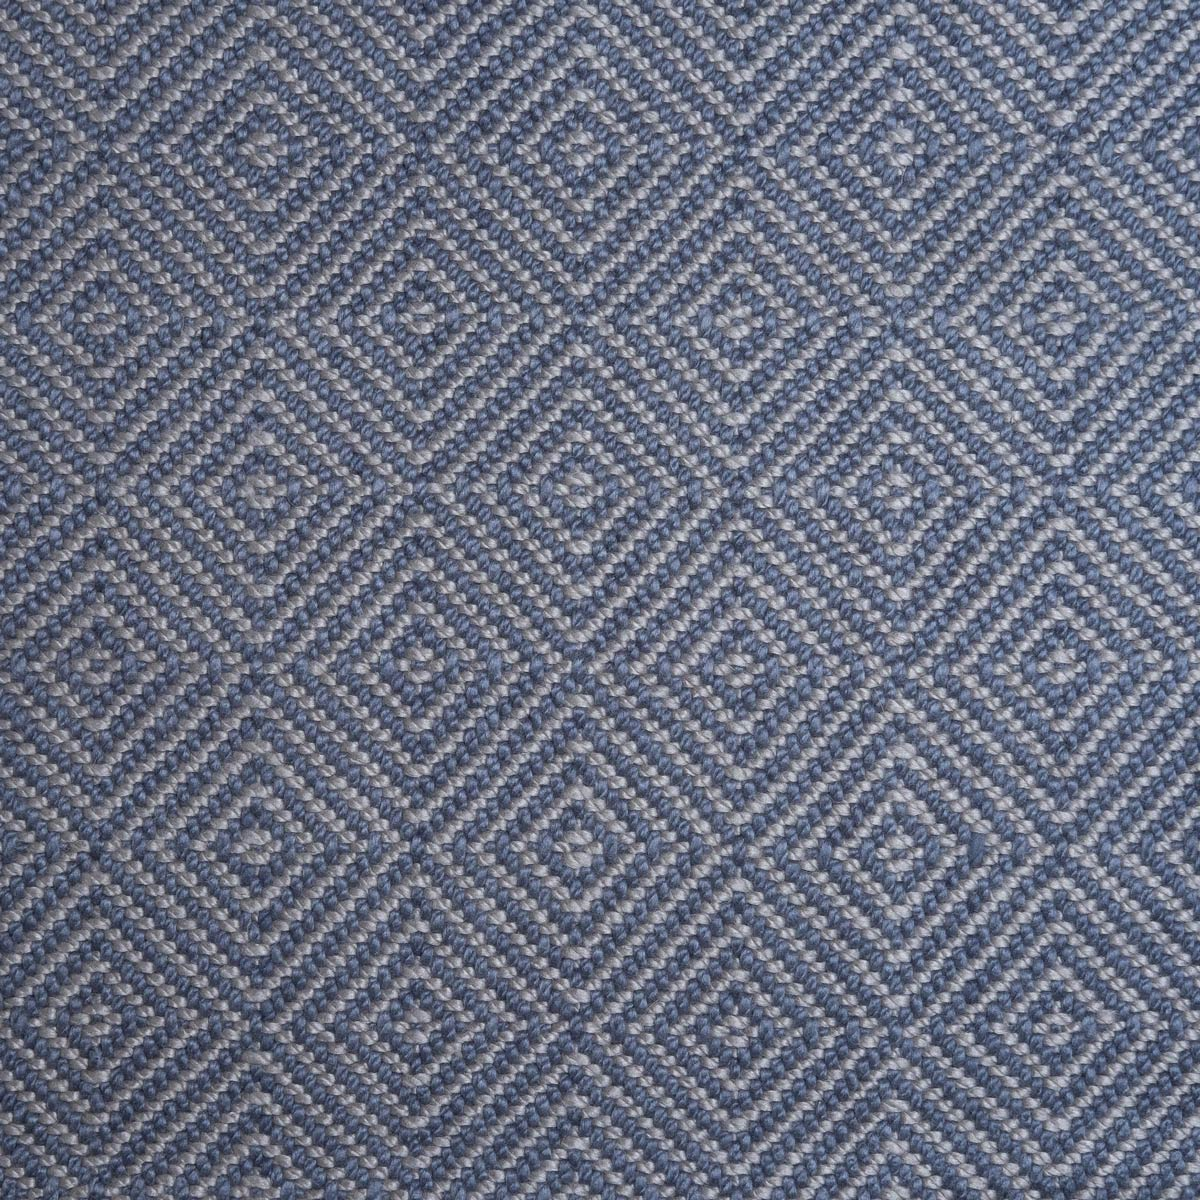 north-quadrangle_nylon_broadloom_patterson-flynn-martin_pfm